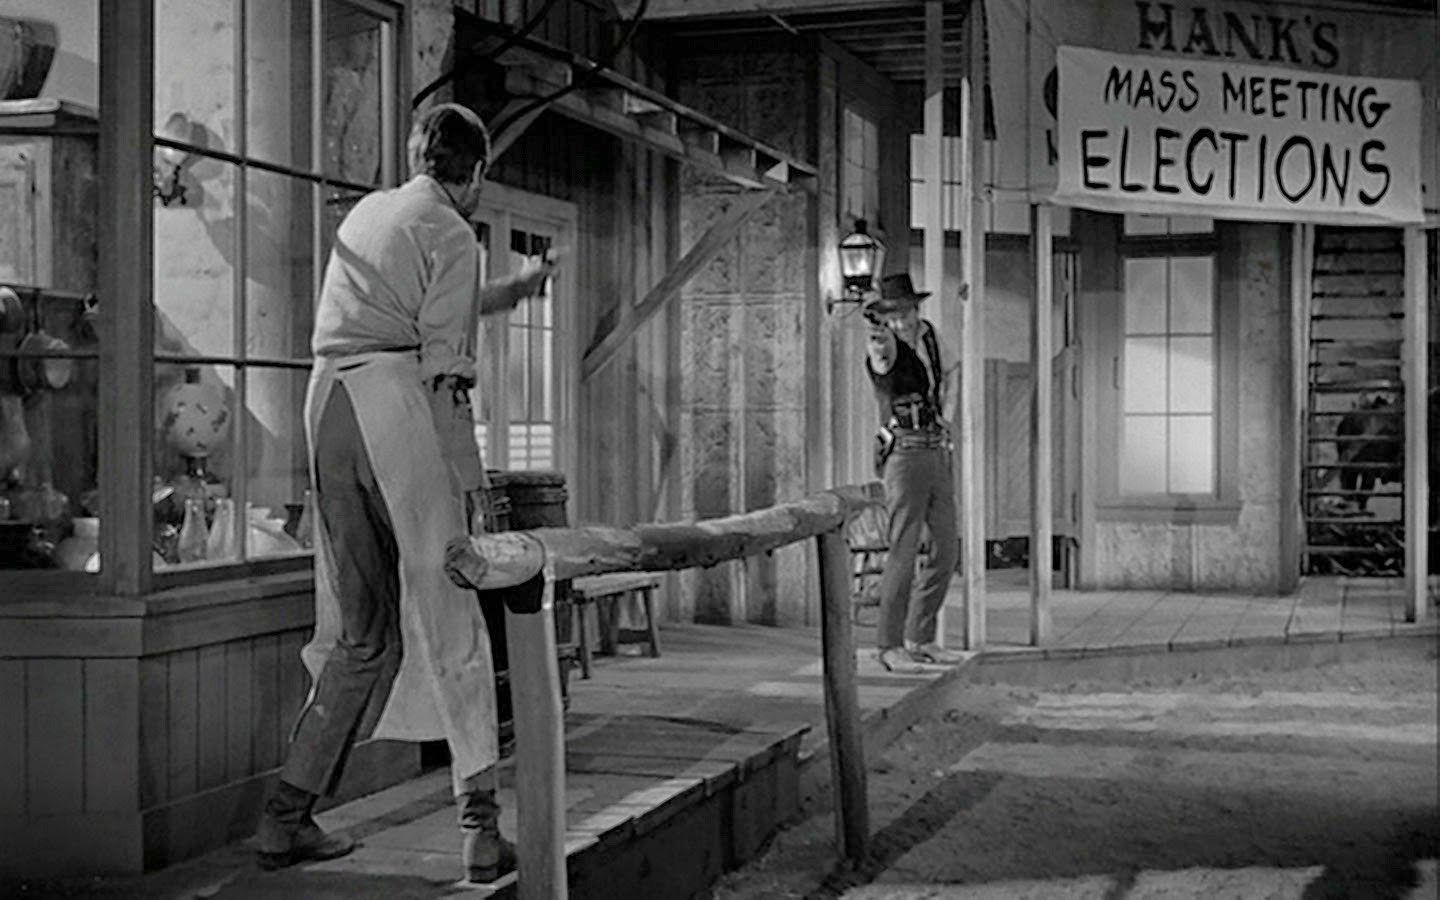 an analysis of the film the man who shot liberty valance by john ford The man who shot liberty valance  john ford's film career began  from this rose auteurism—authorship theory—and mise-en-scène analysis ford was.